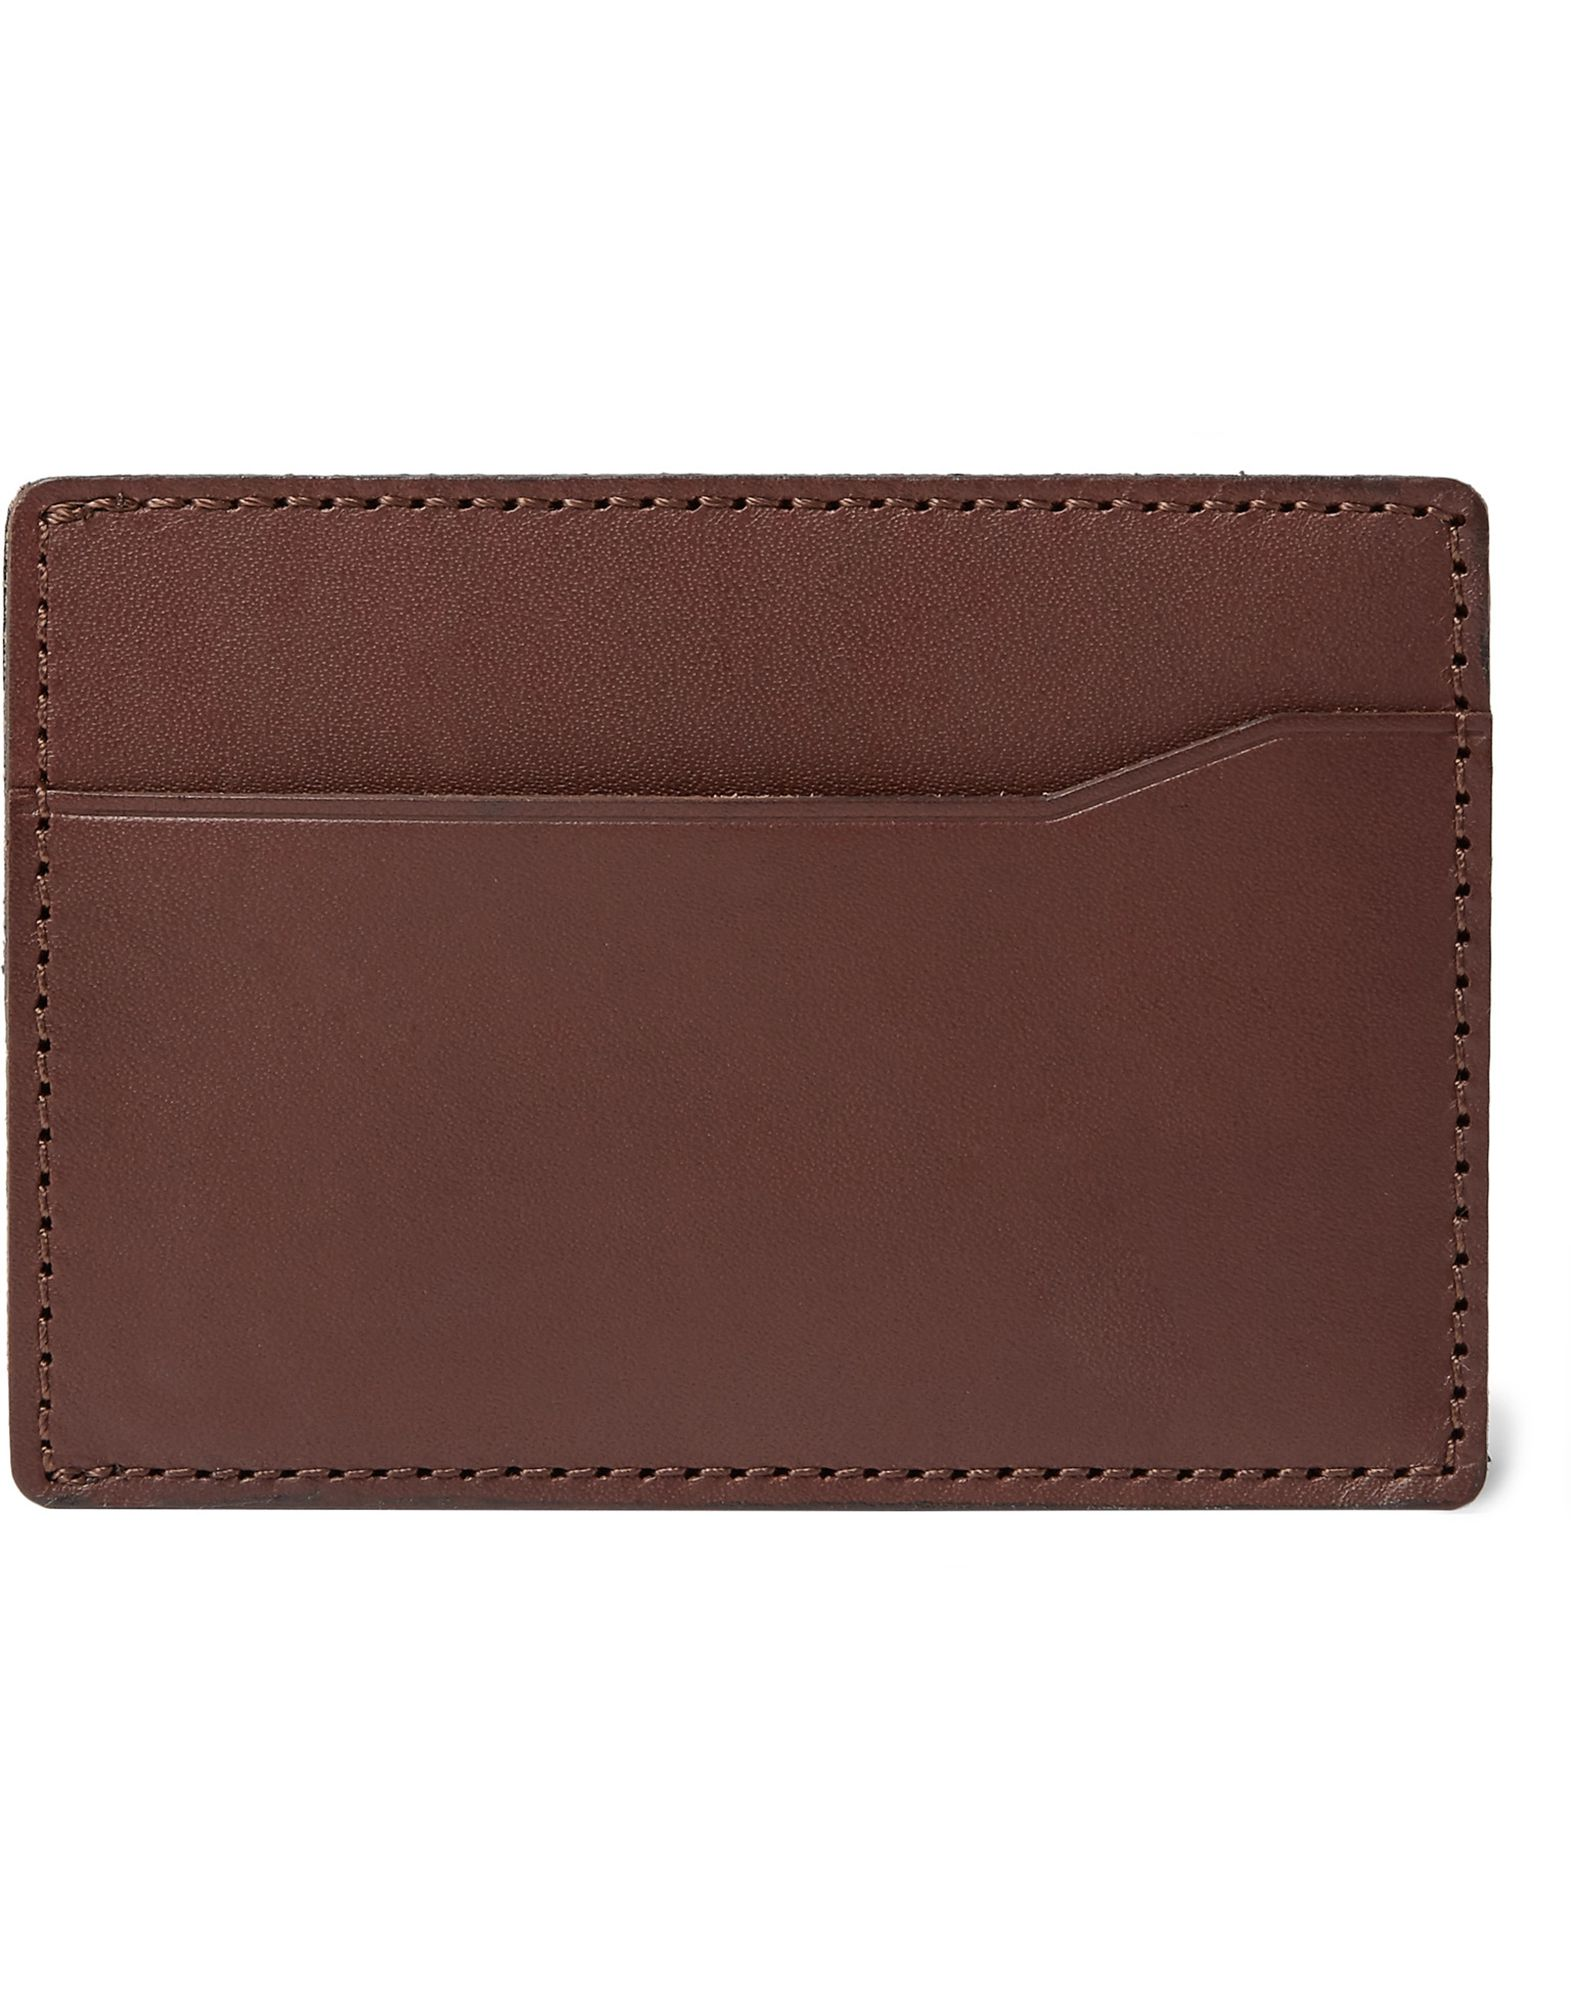 J.CREW Document holders. logo, solid color, external pockets, contains non-textile parts of animal origin. Soft Leather